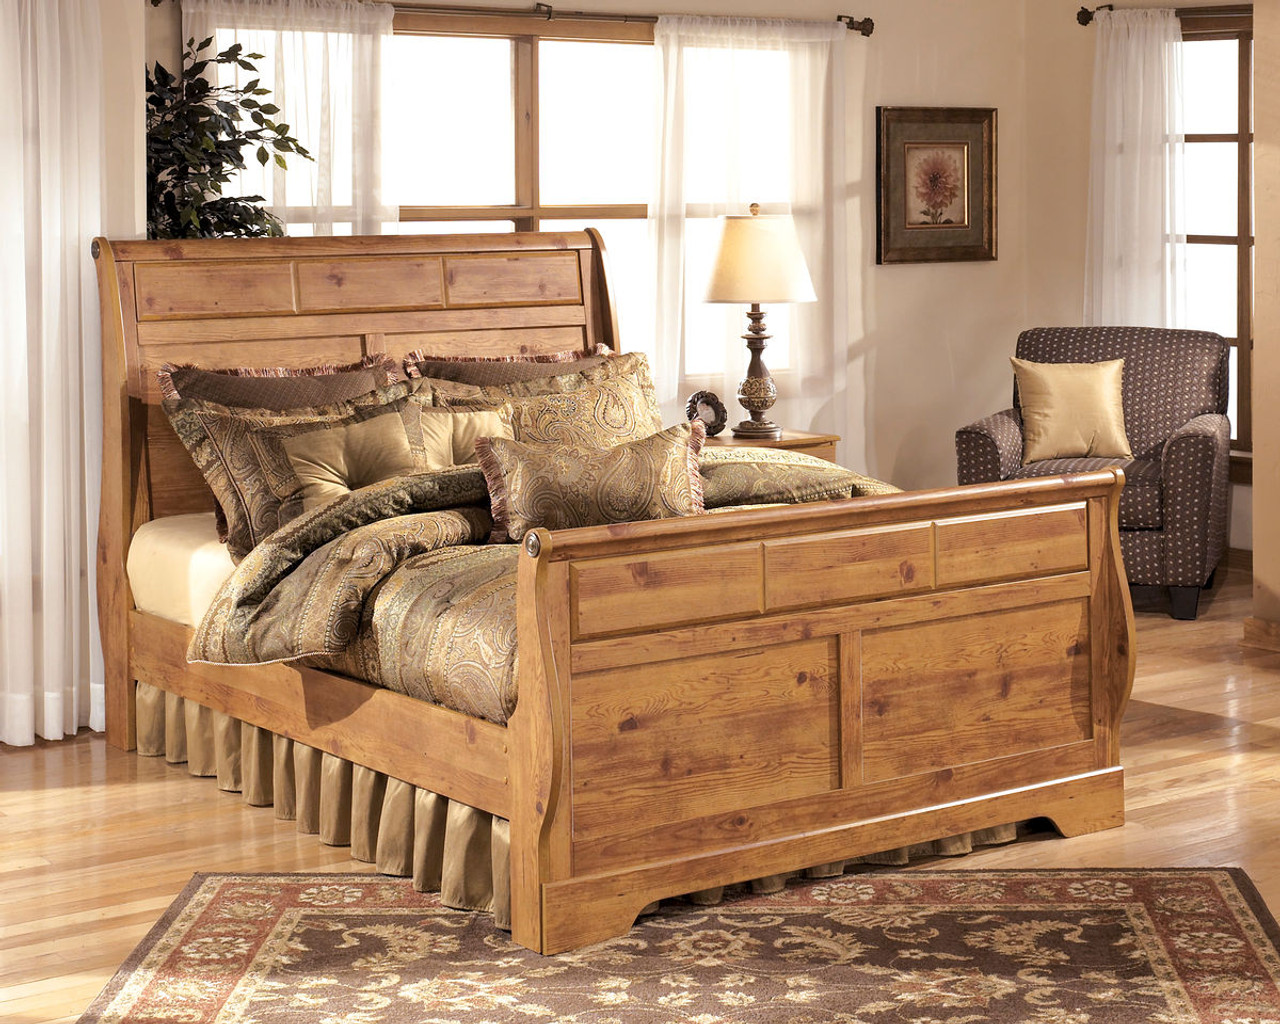 Picture of: Ashley Bittersweet Light Brown Queen Sleigh Bed On Sale At Furniture And Mattress Warehouse Serving Holland Mi